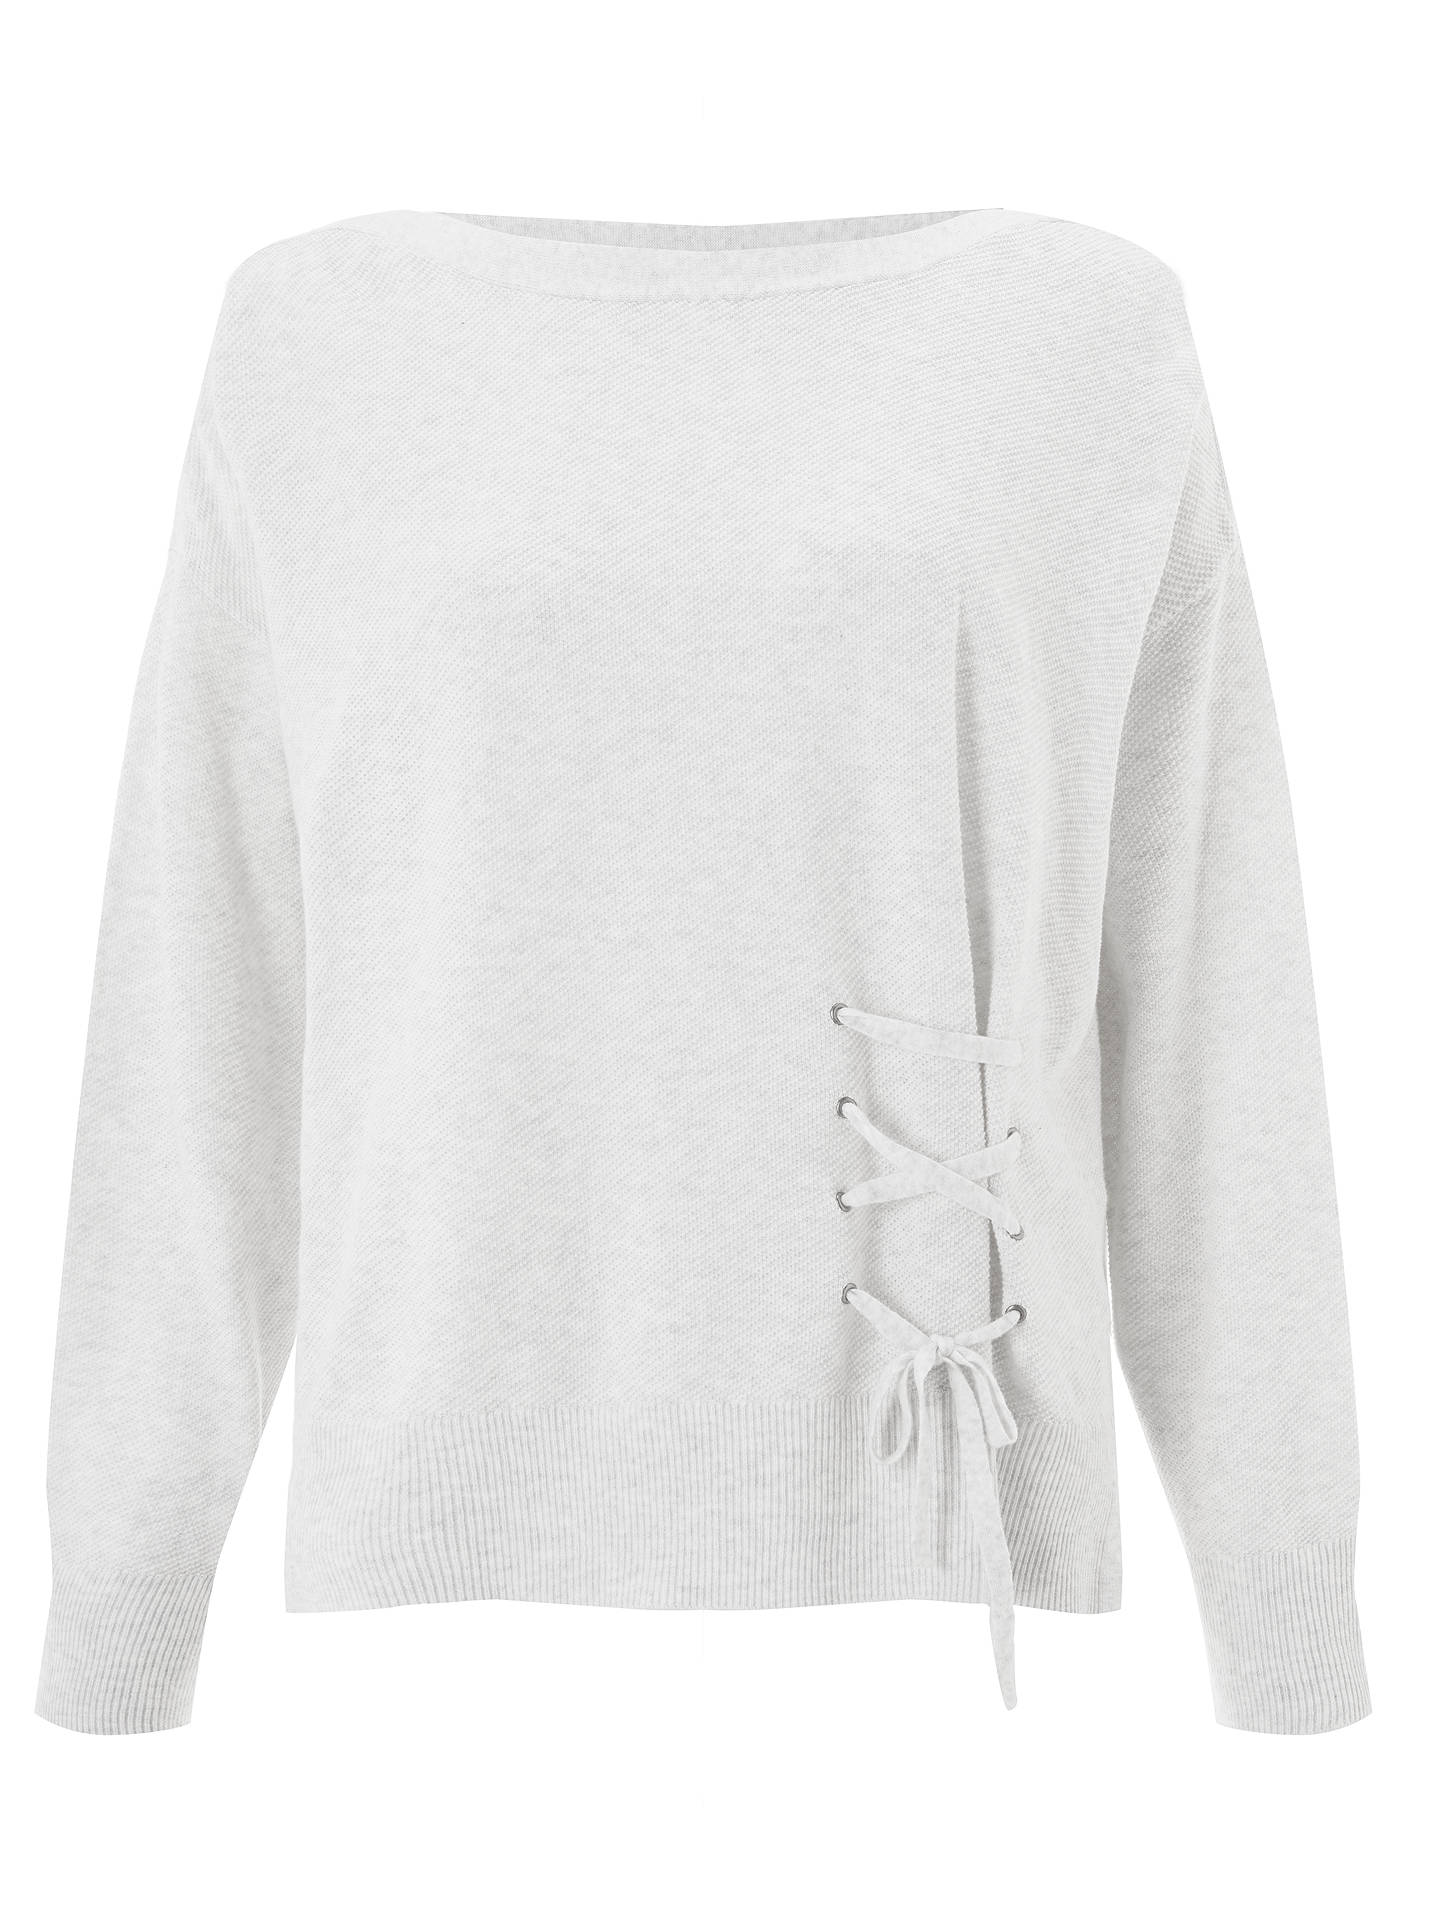 BuyOui Lace Tie Front Cotton Jumper, Off White, 8 Online at johnlewis.com